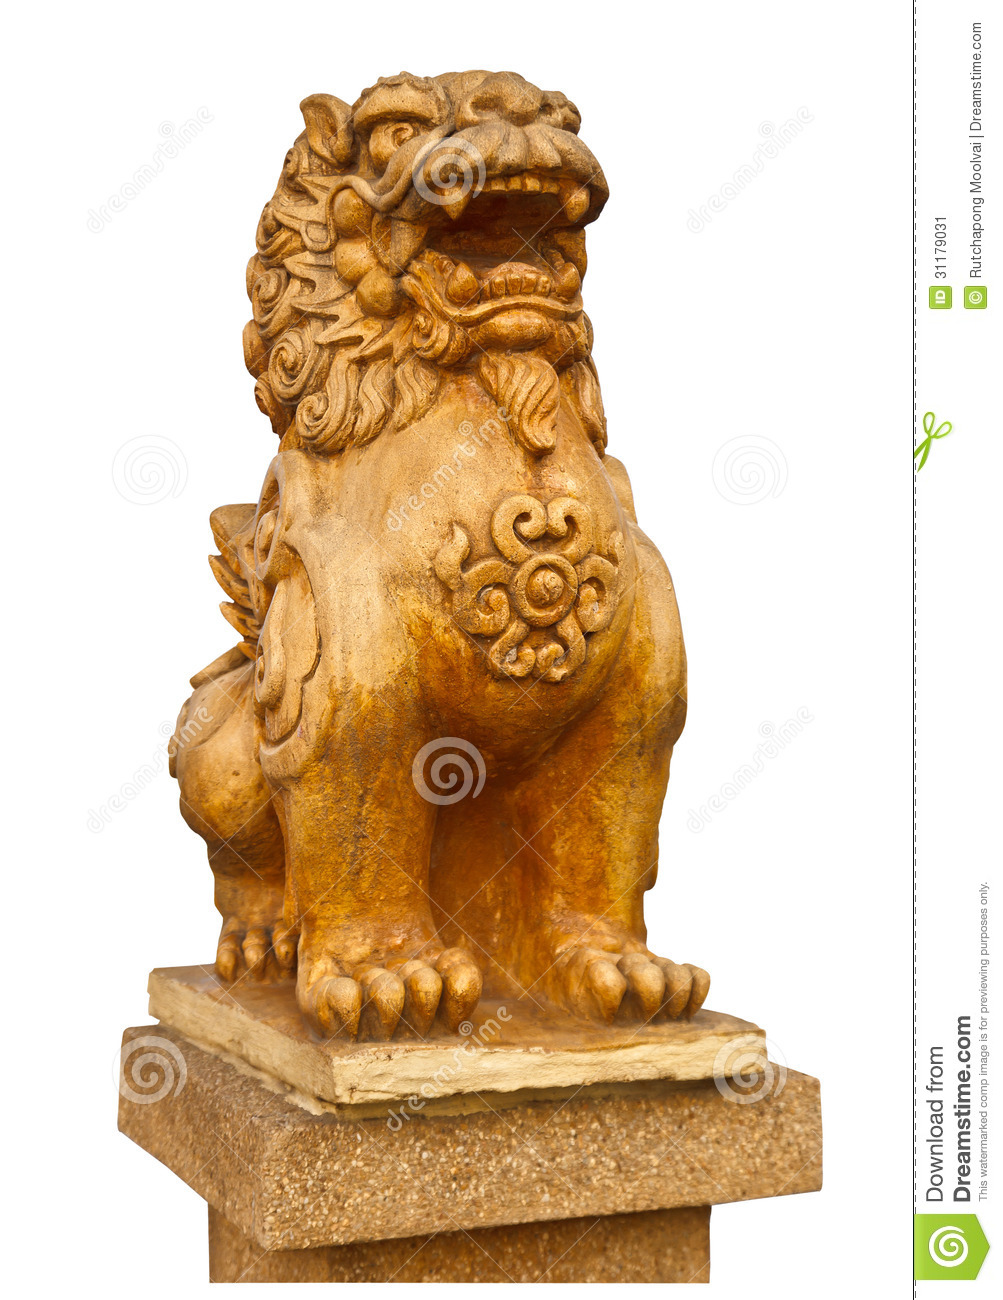 statue en pierre chinoise de lion le symbole de la puissance pour le chinois image stock image. Black Bedroom Furniture Sets. Home Design Ideas